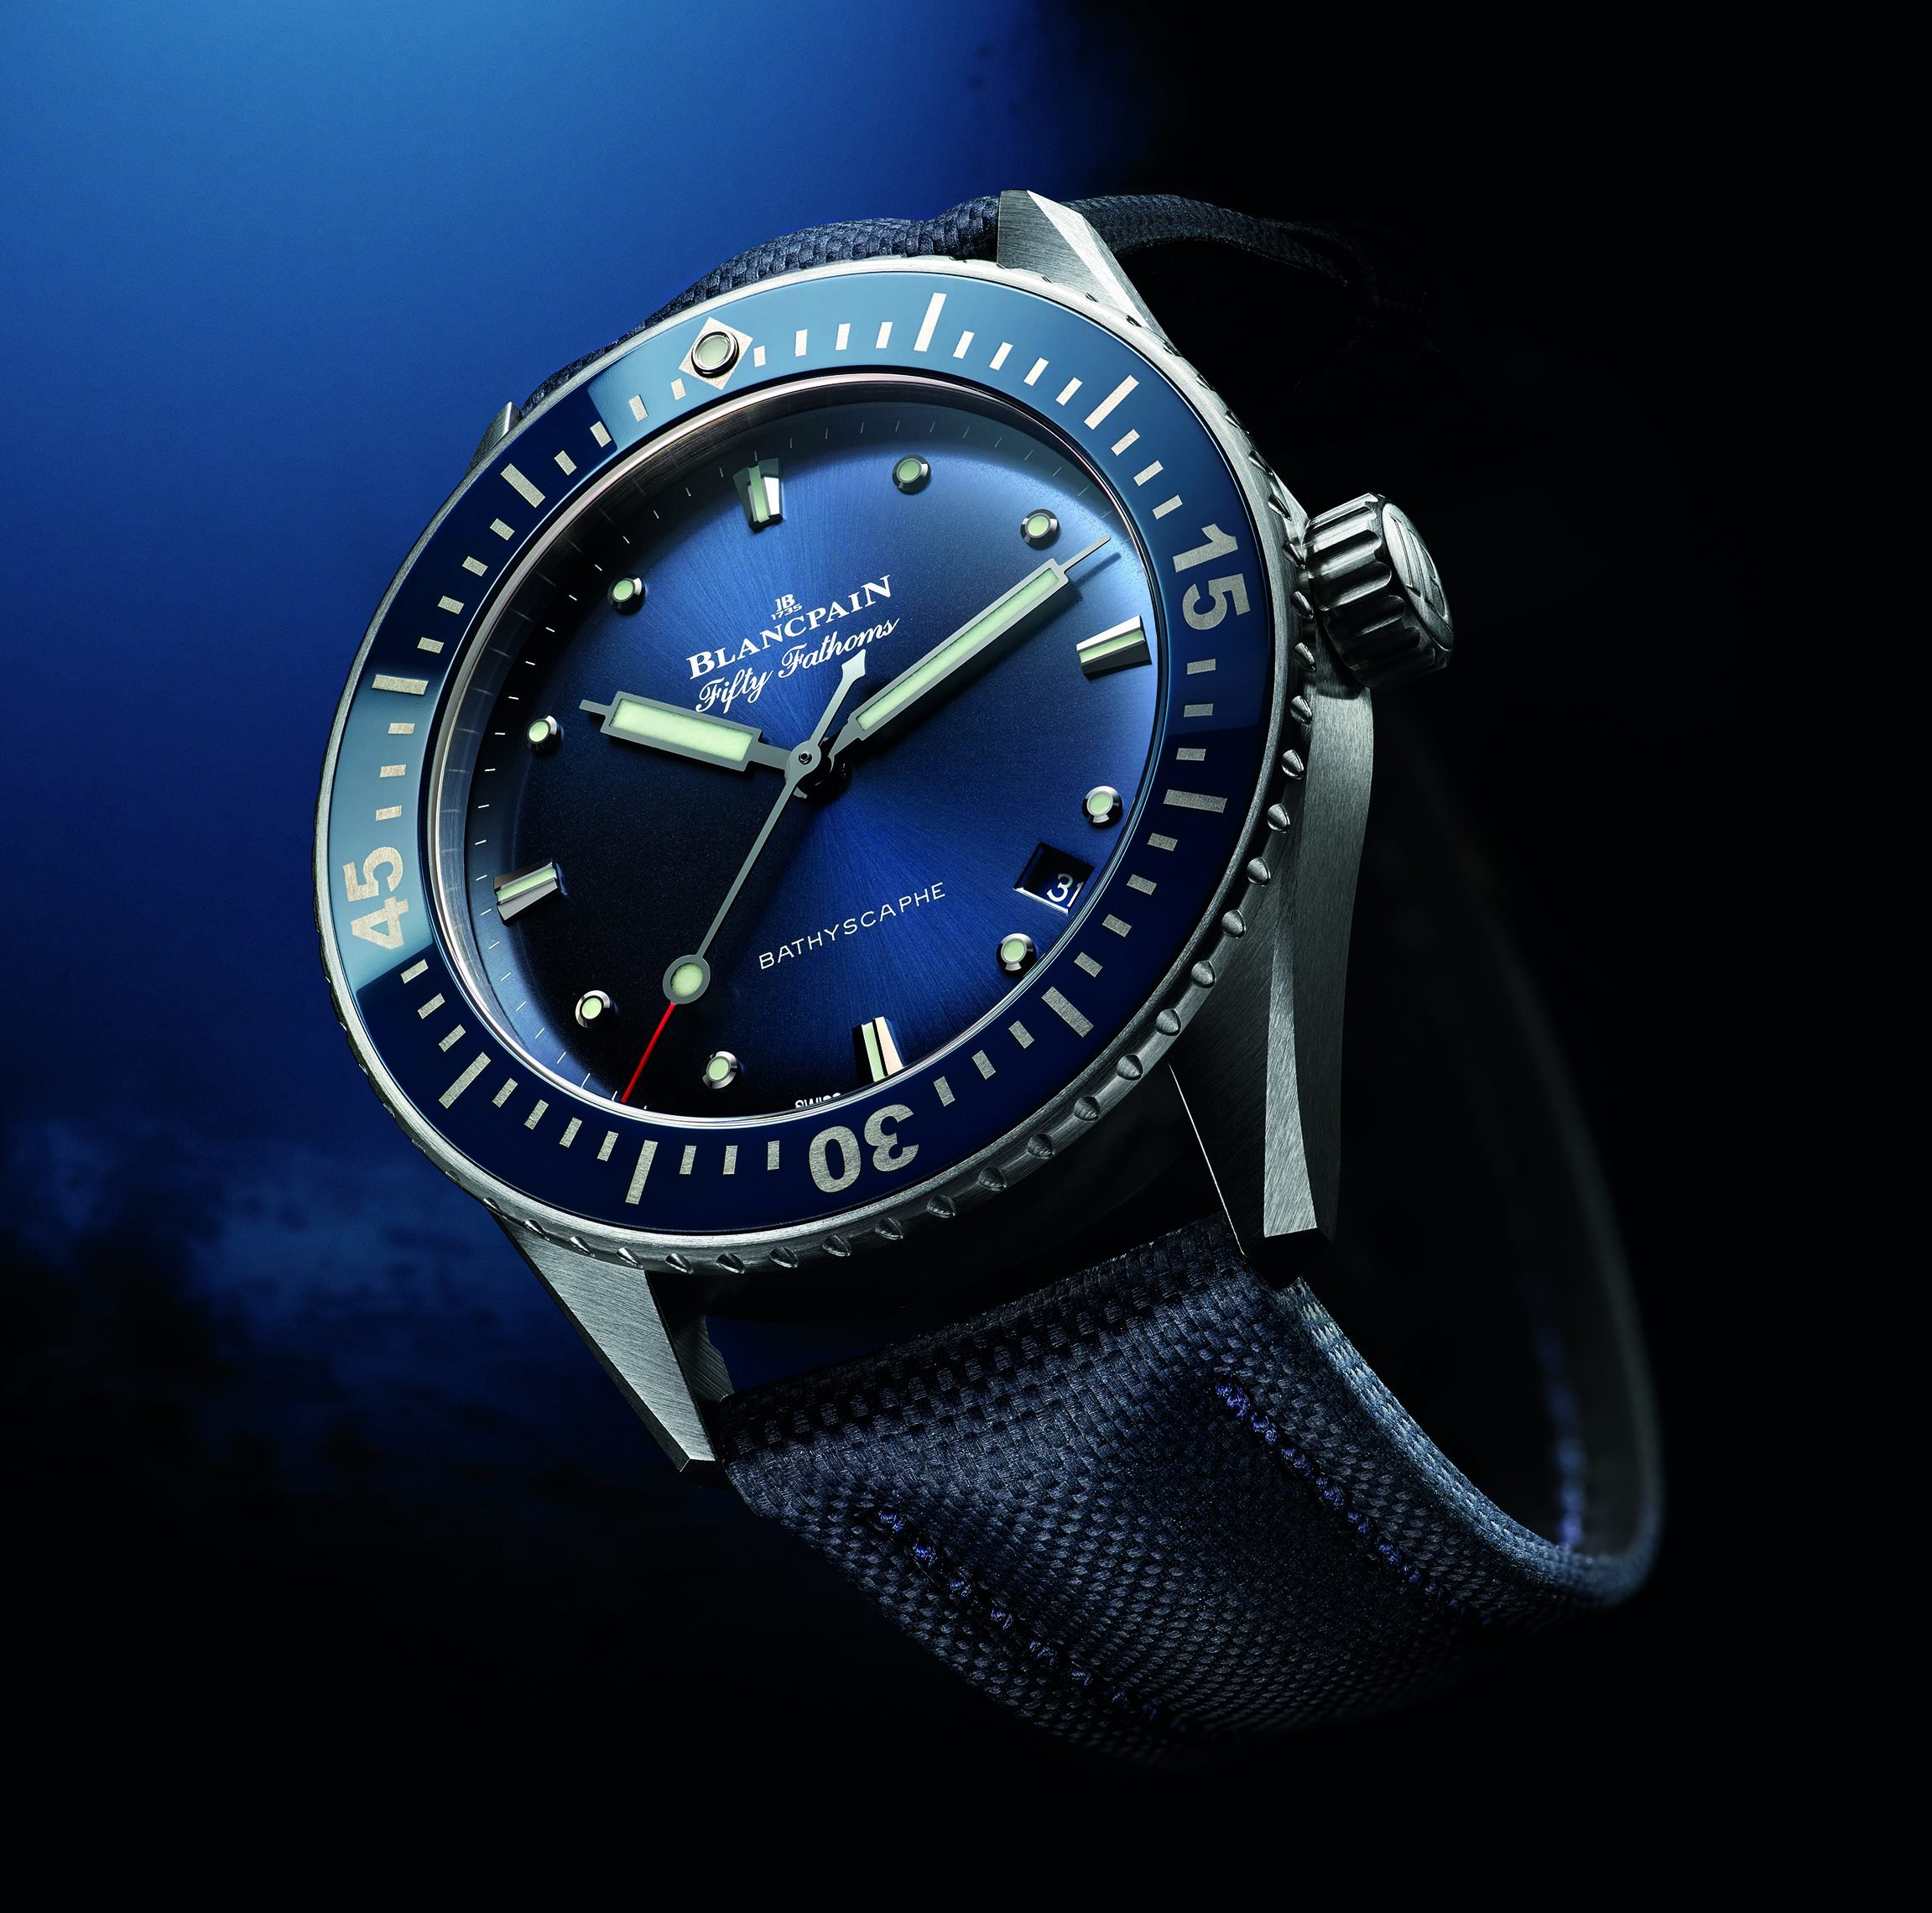 This is a Pre-Baselworld 2017 look into what will be coming.